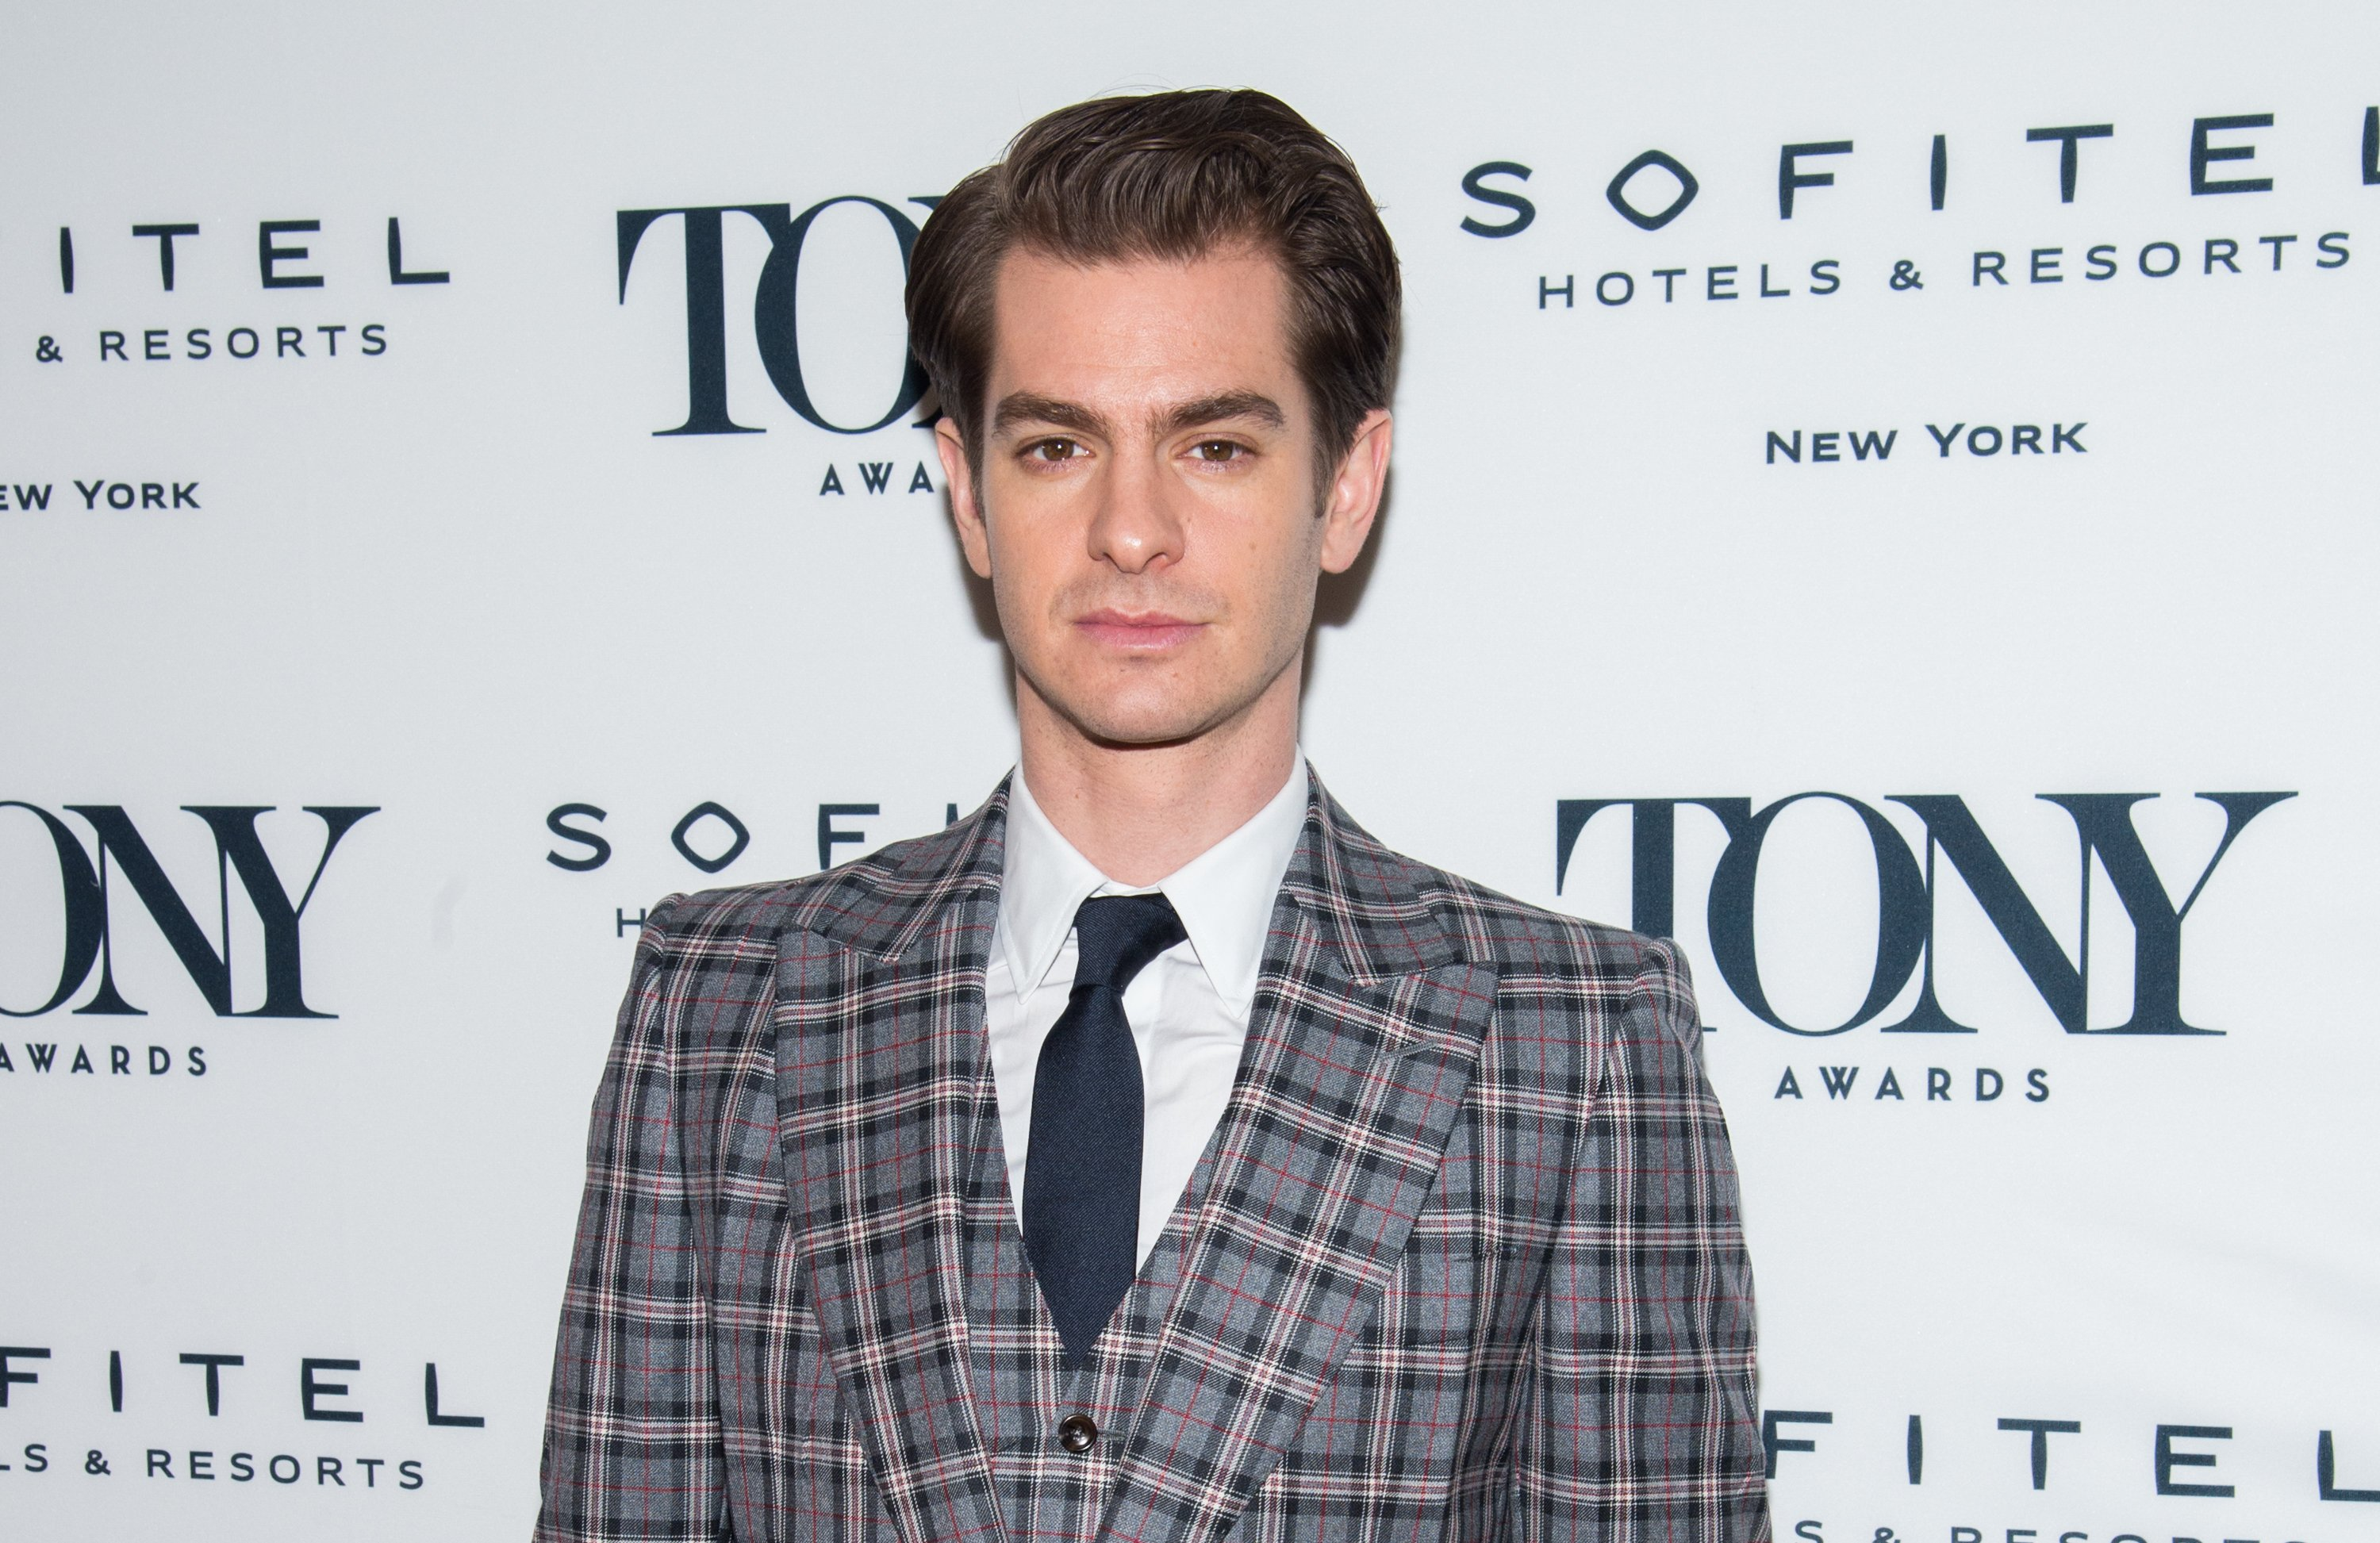 Andrew Garfield at the 2018 Tony Honors For Excellence In The Theatre and 2018 Special Award Recipients Cocktail Party at the Sofitel Hotel in New York City | Photo: Mark Sagliocco/WireImage via Getty Images